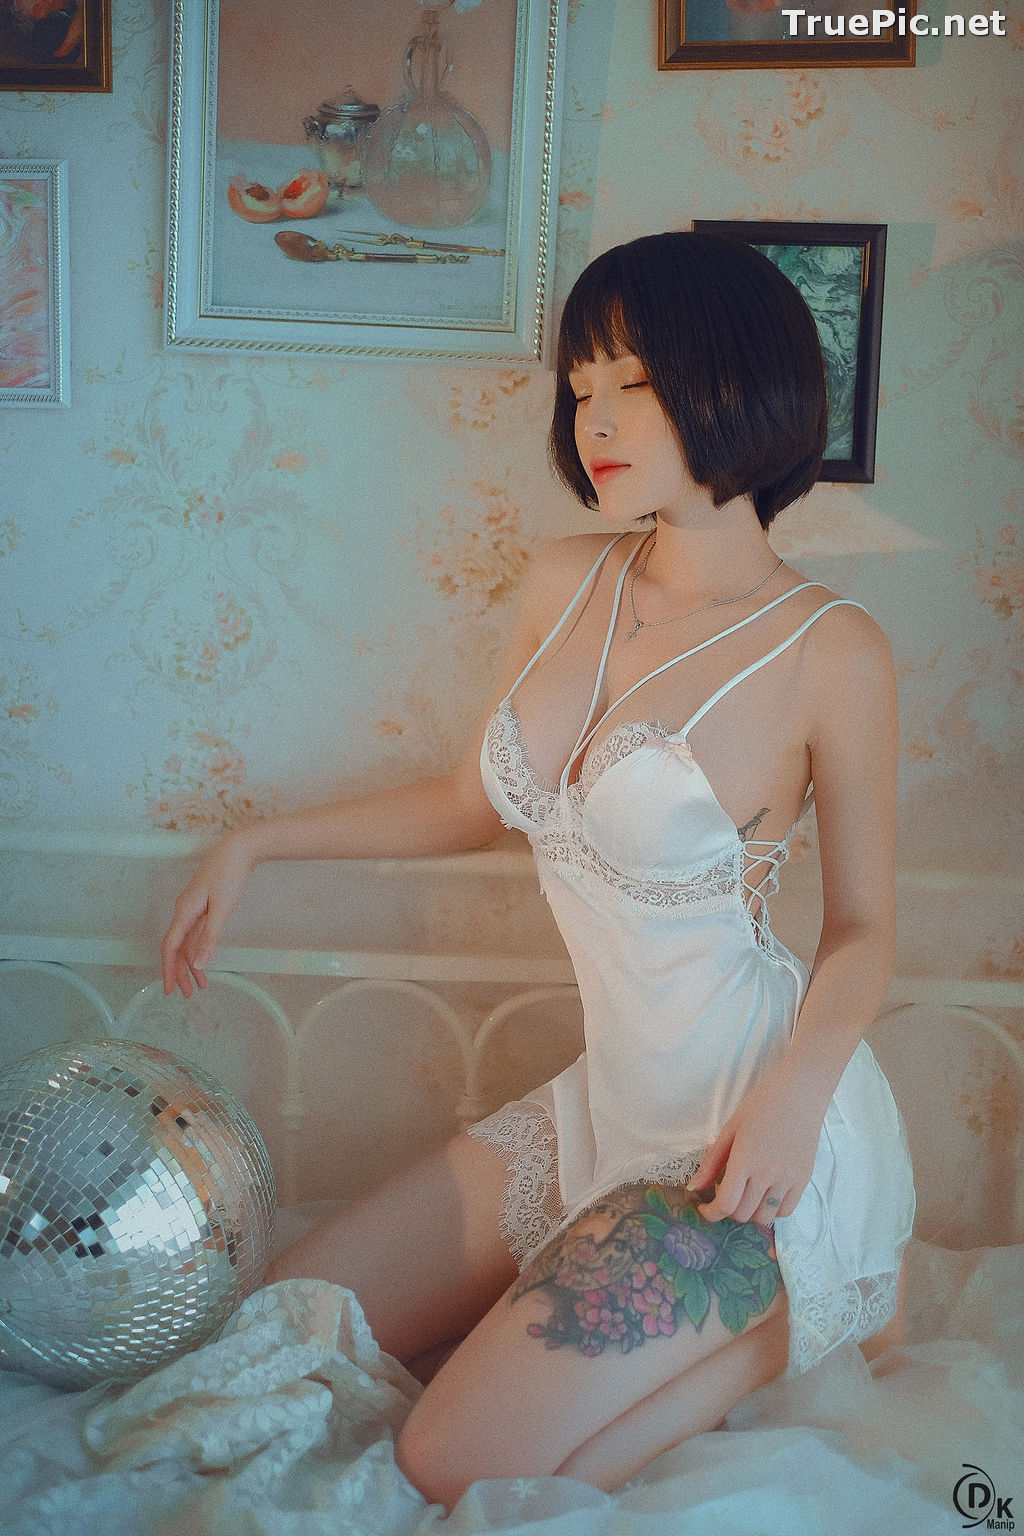 Image Vietnamese Model – Cute Short-haired Girl in White Sexy Sleepwear - TruePic.net - Picture-2